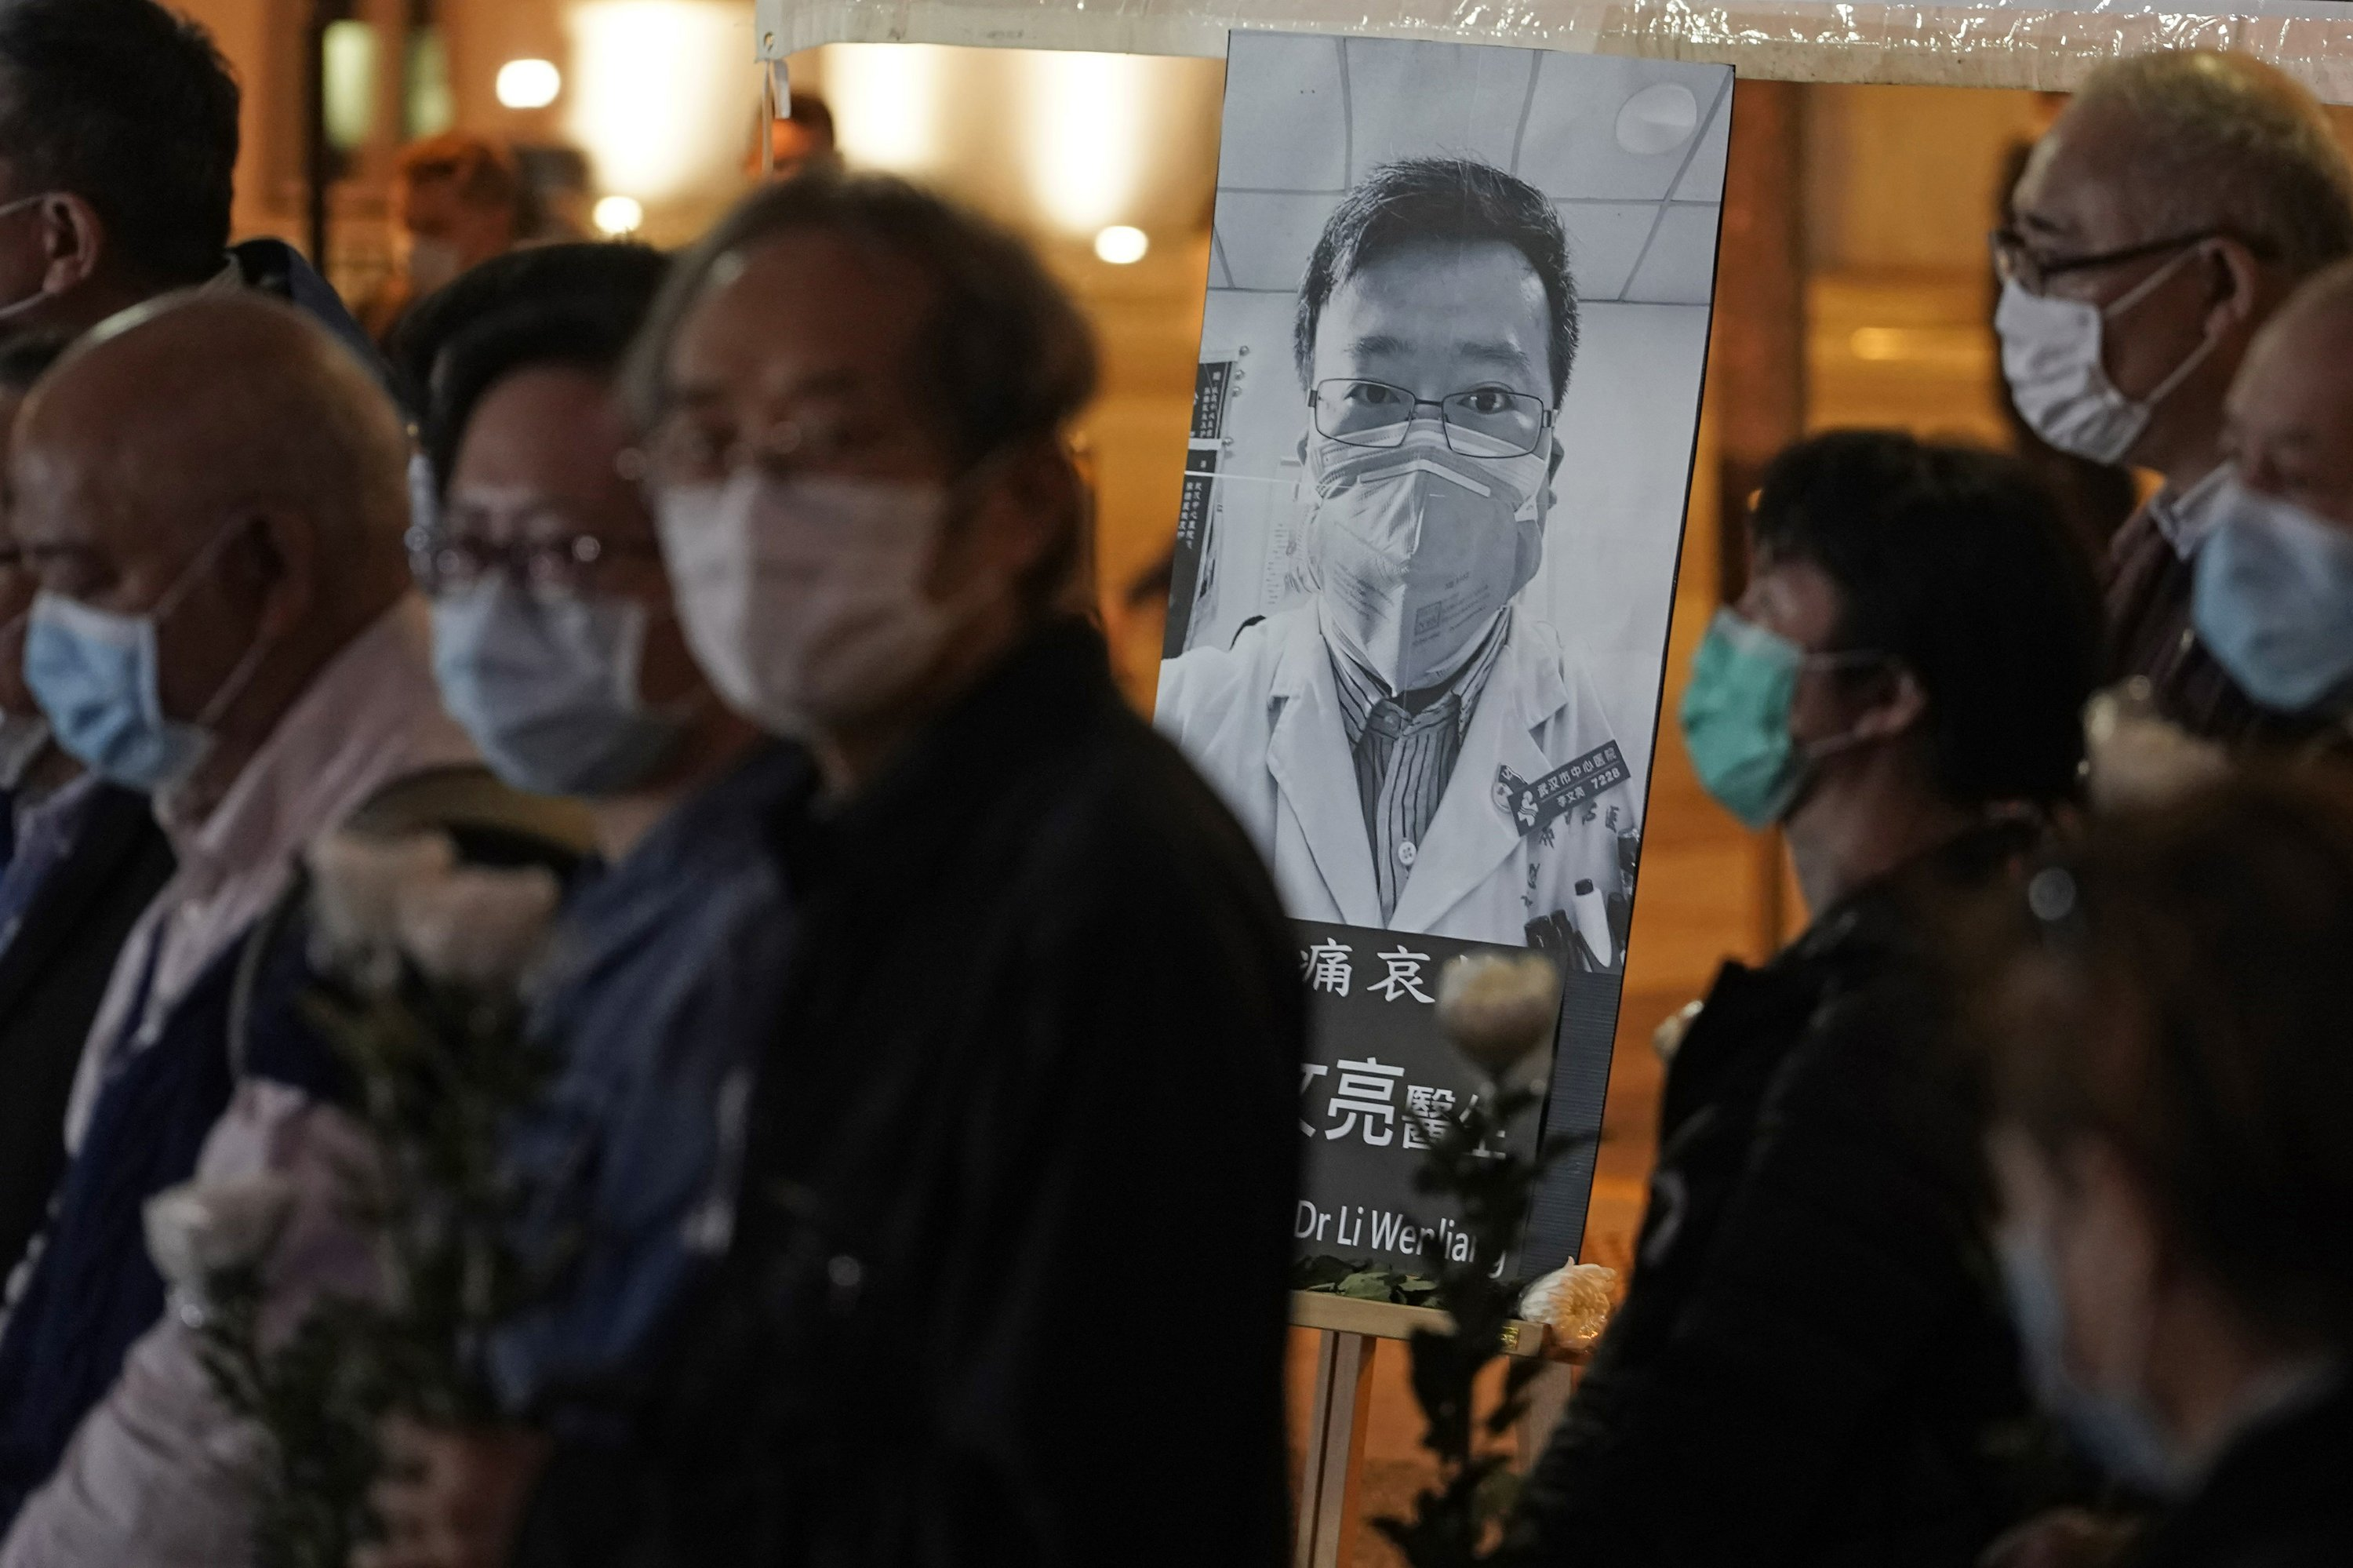 China's Communist Party faces recriminations over virus